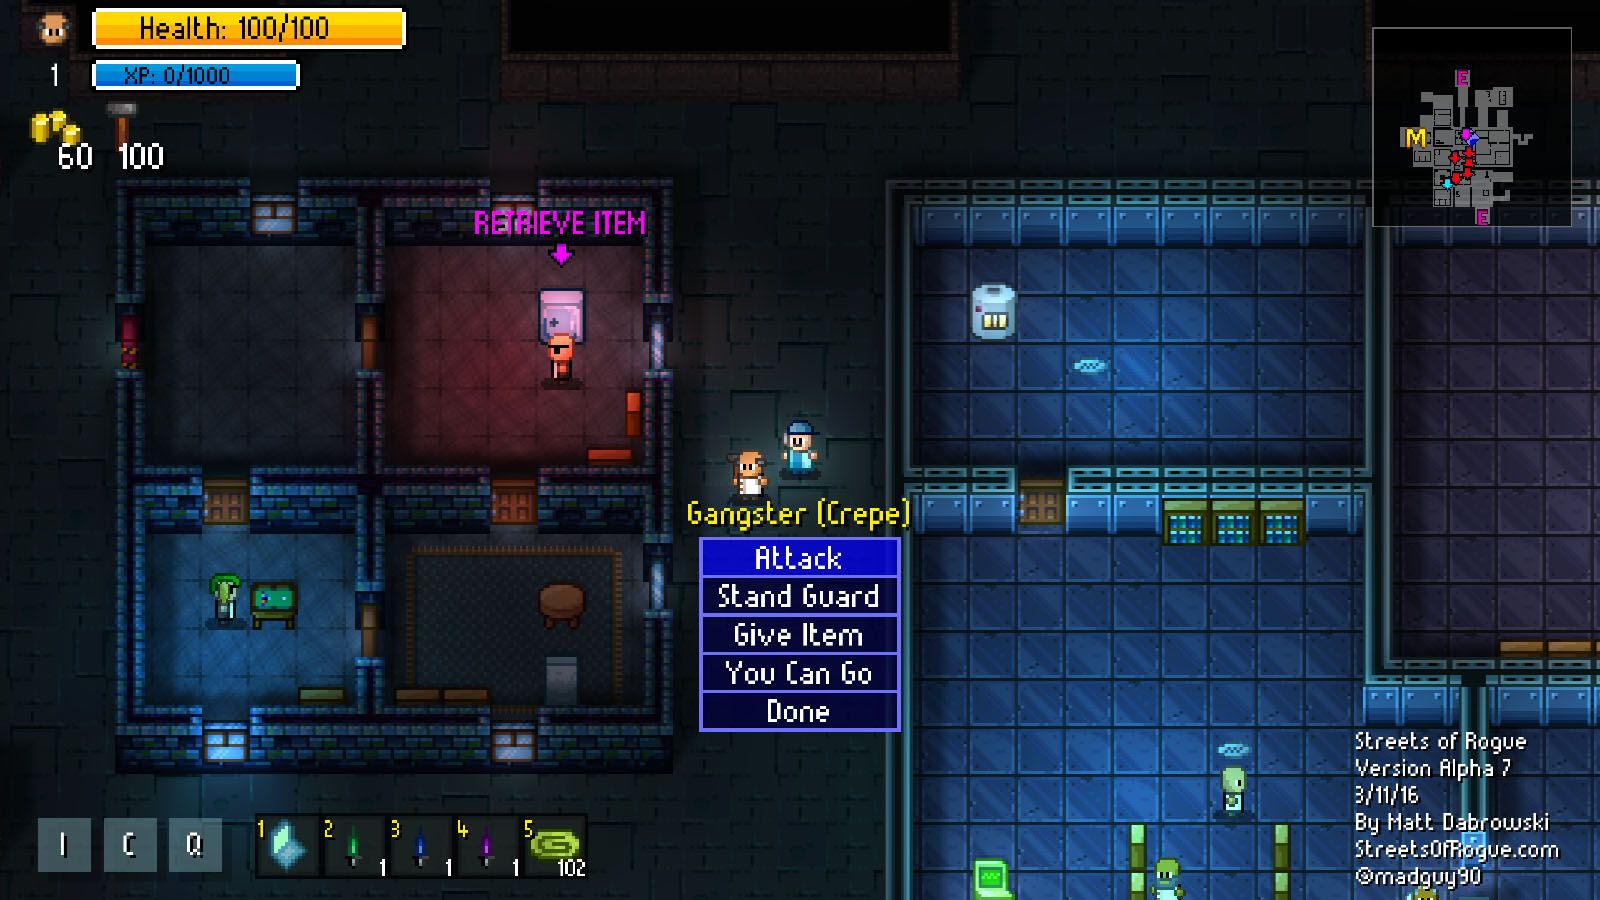 Streets of Rogue (PC) Preview Rogues, Street, Pixel art